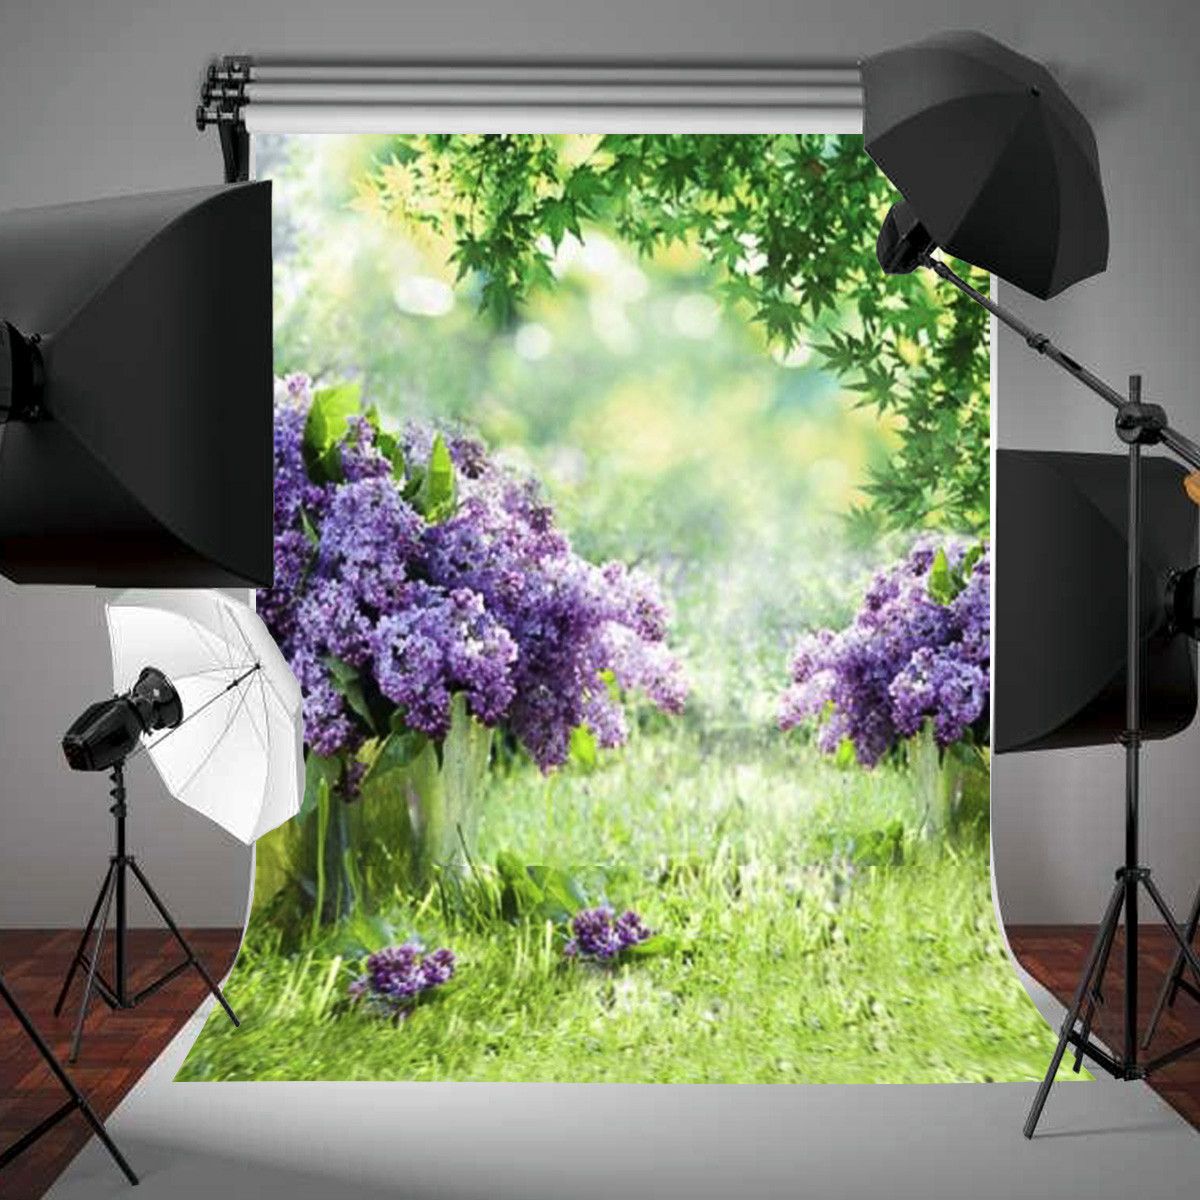 Spring Outdoor Green Grass Photography Background Backdrop For Studio 3x5ft